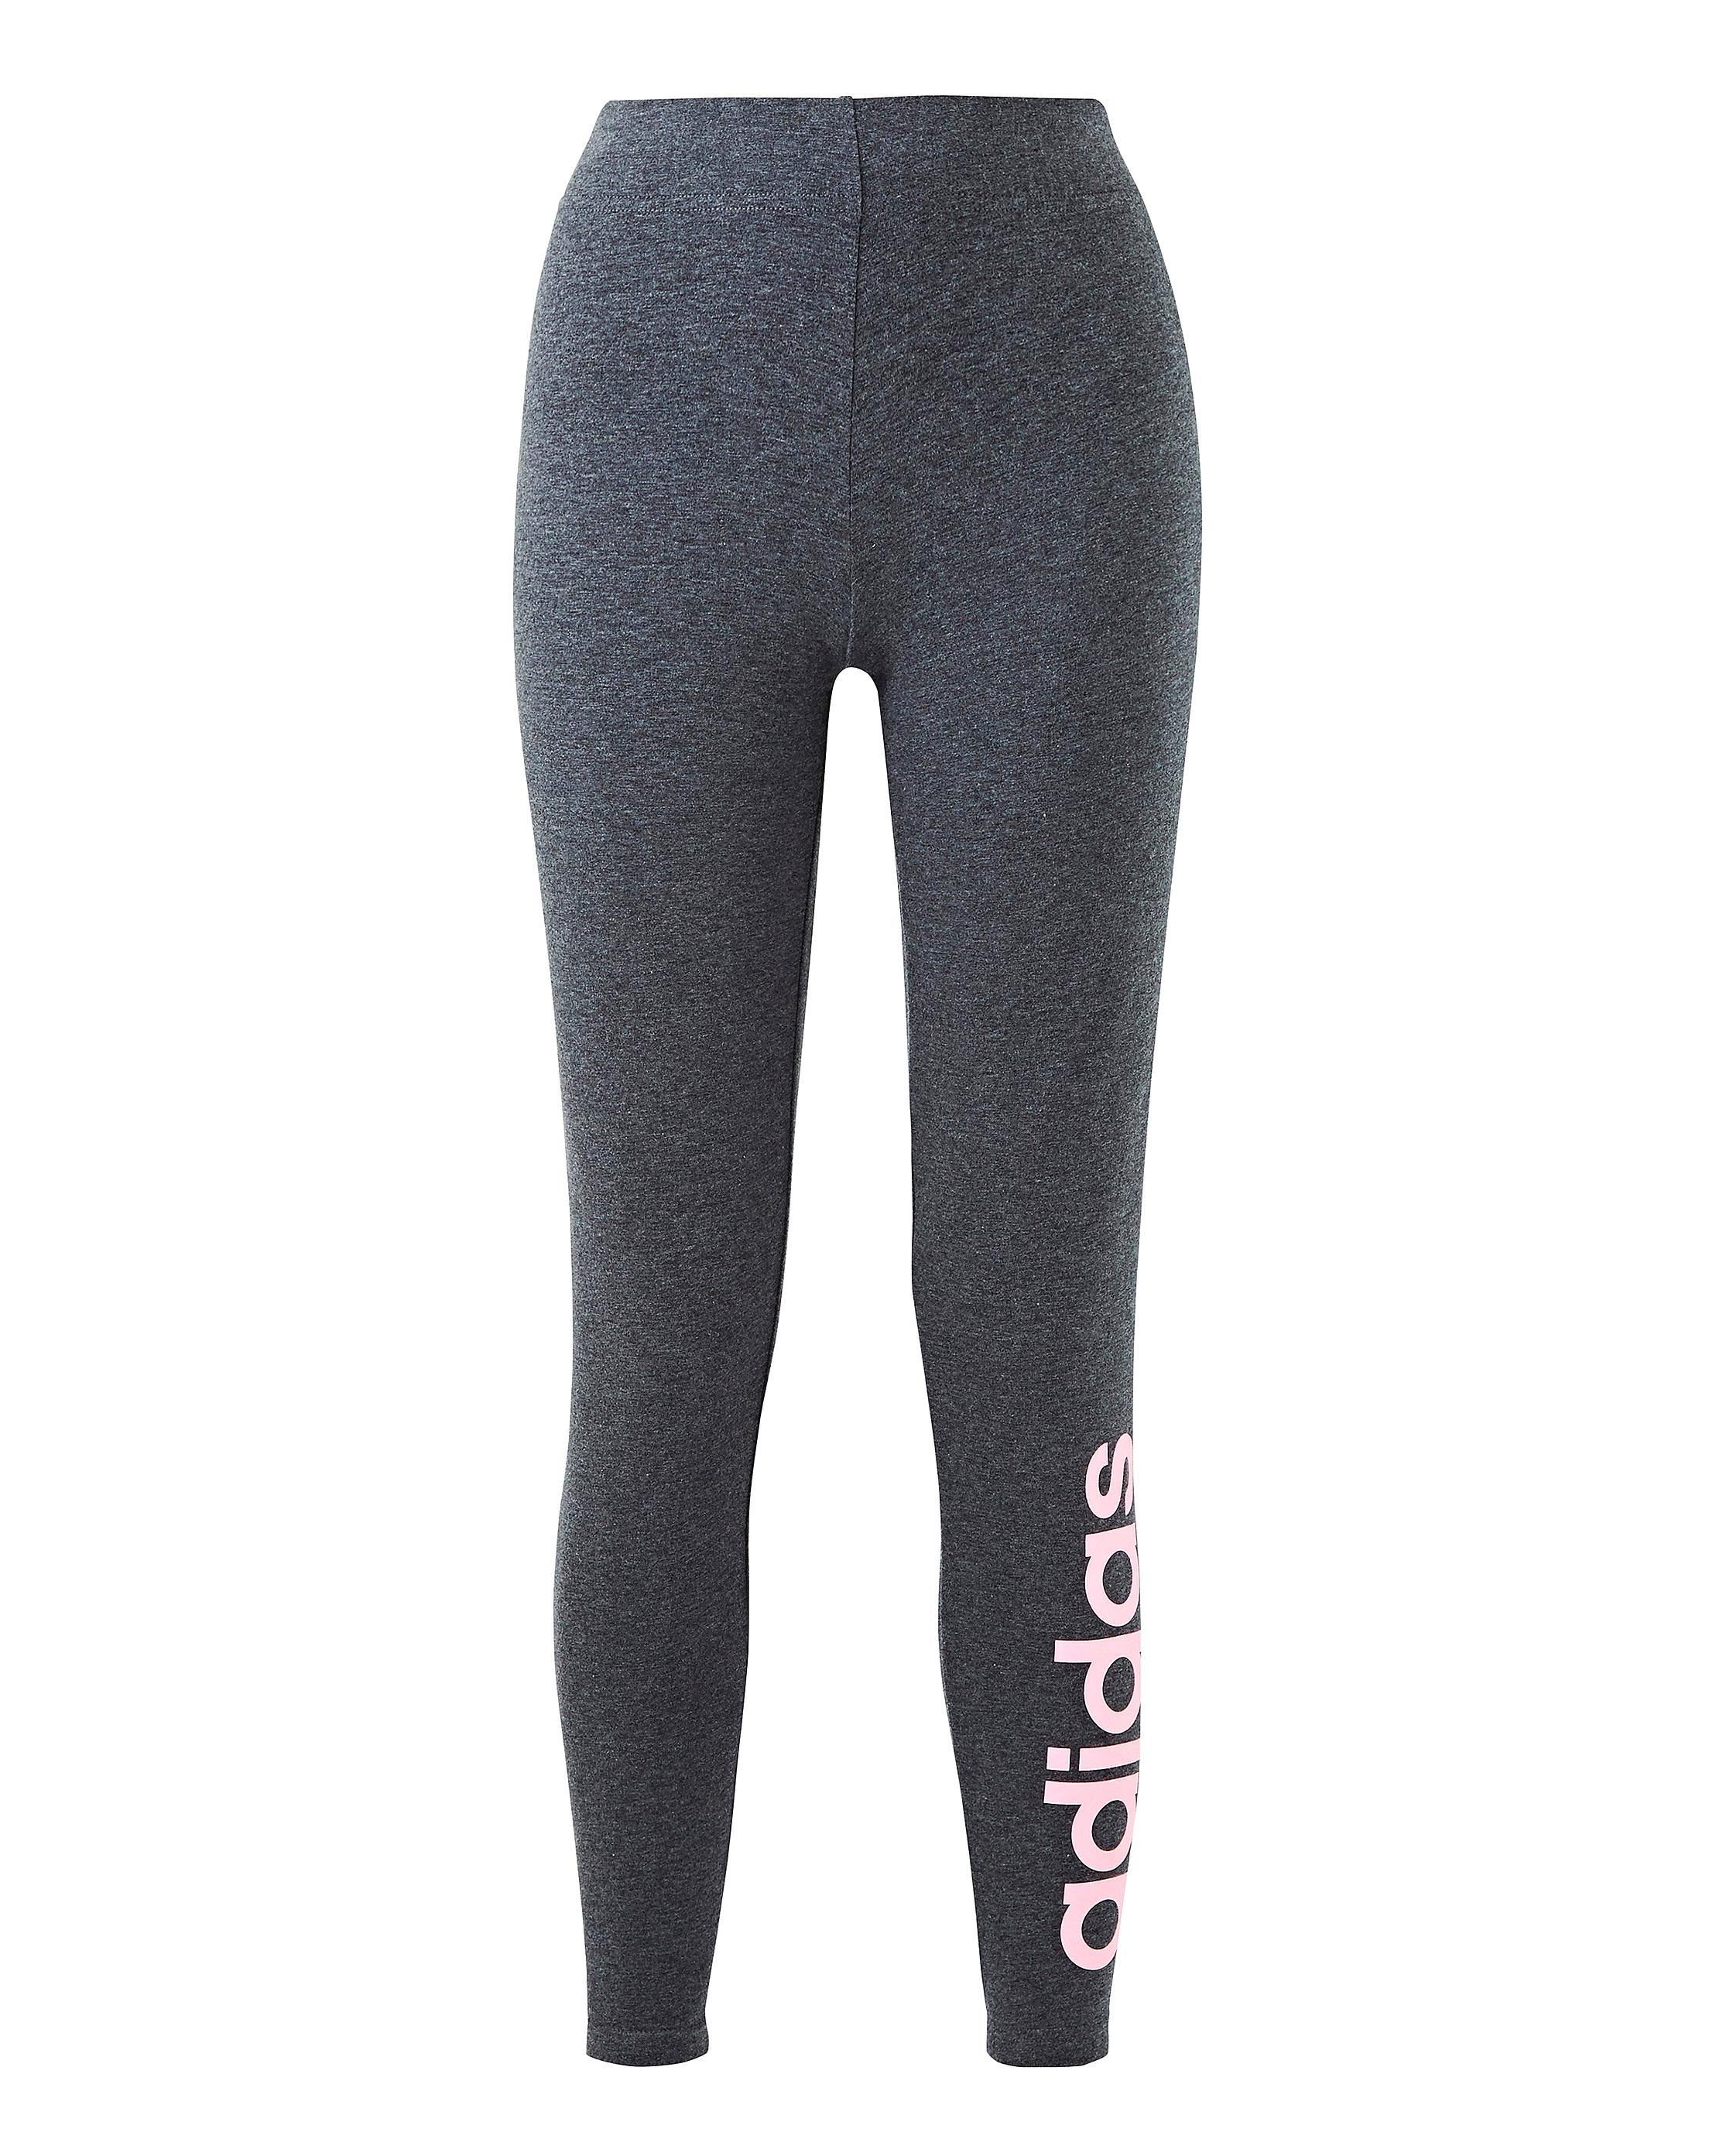 05e84b75f50ac Lyst - Simply Be Adidas Linear Tight in Gray